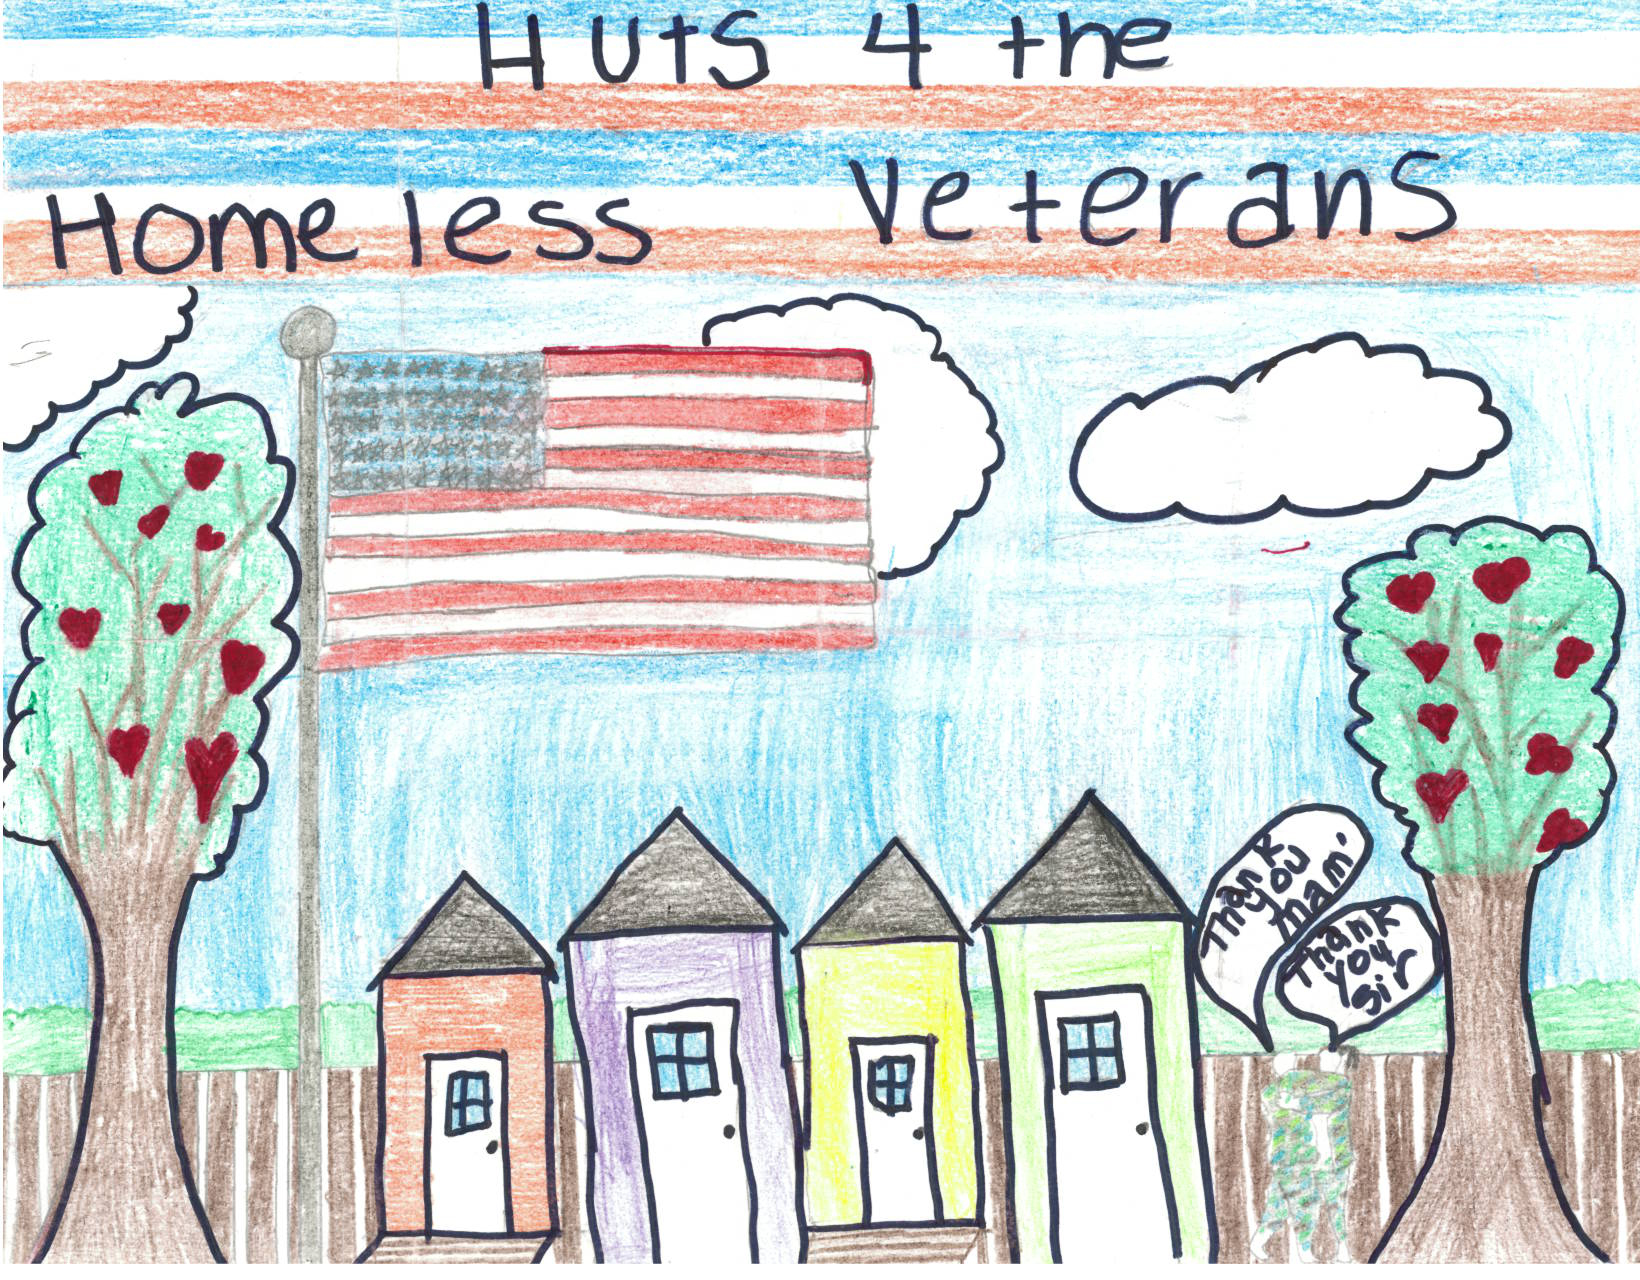 Children's drawing of homes created to house homeless veterans. On the side, two soldiers embrace and give thanks.